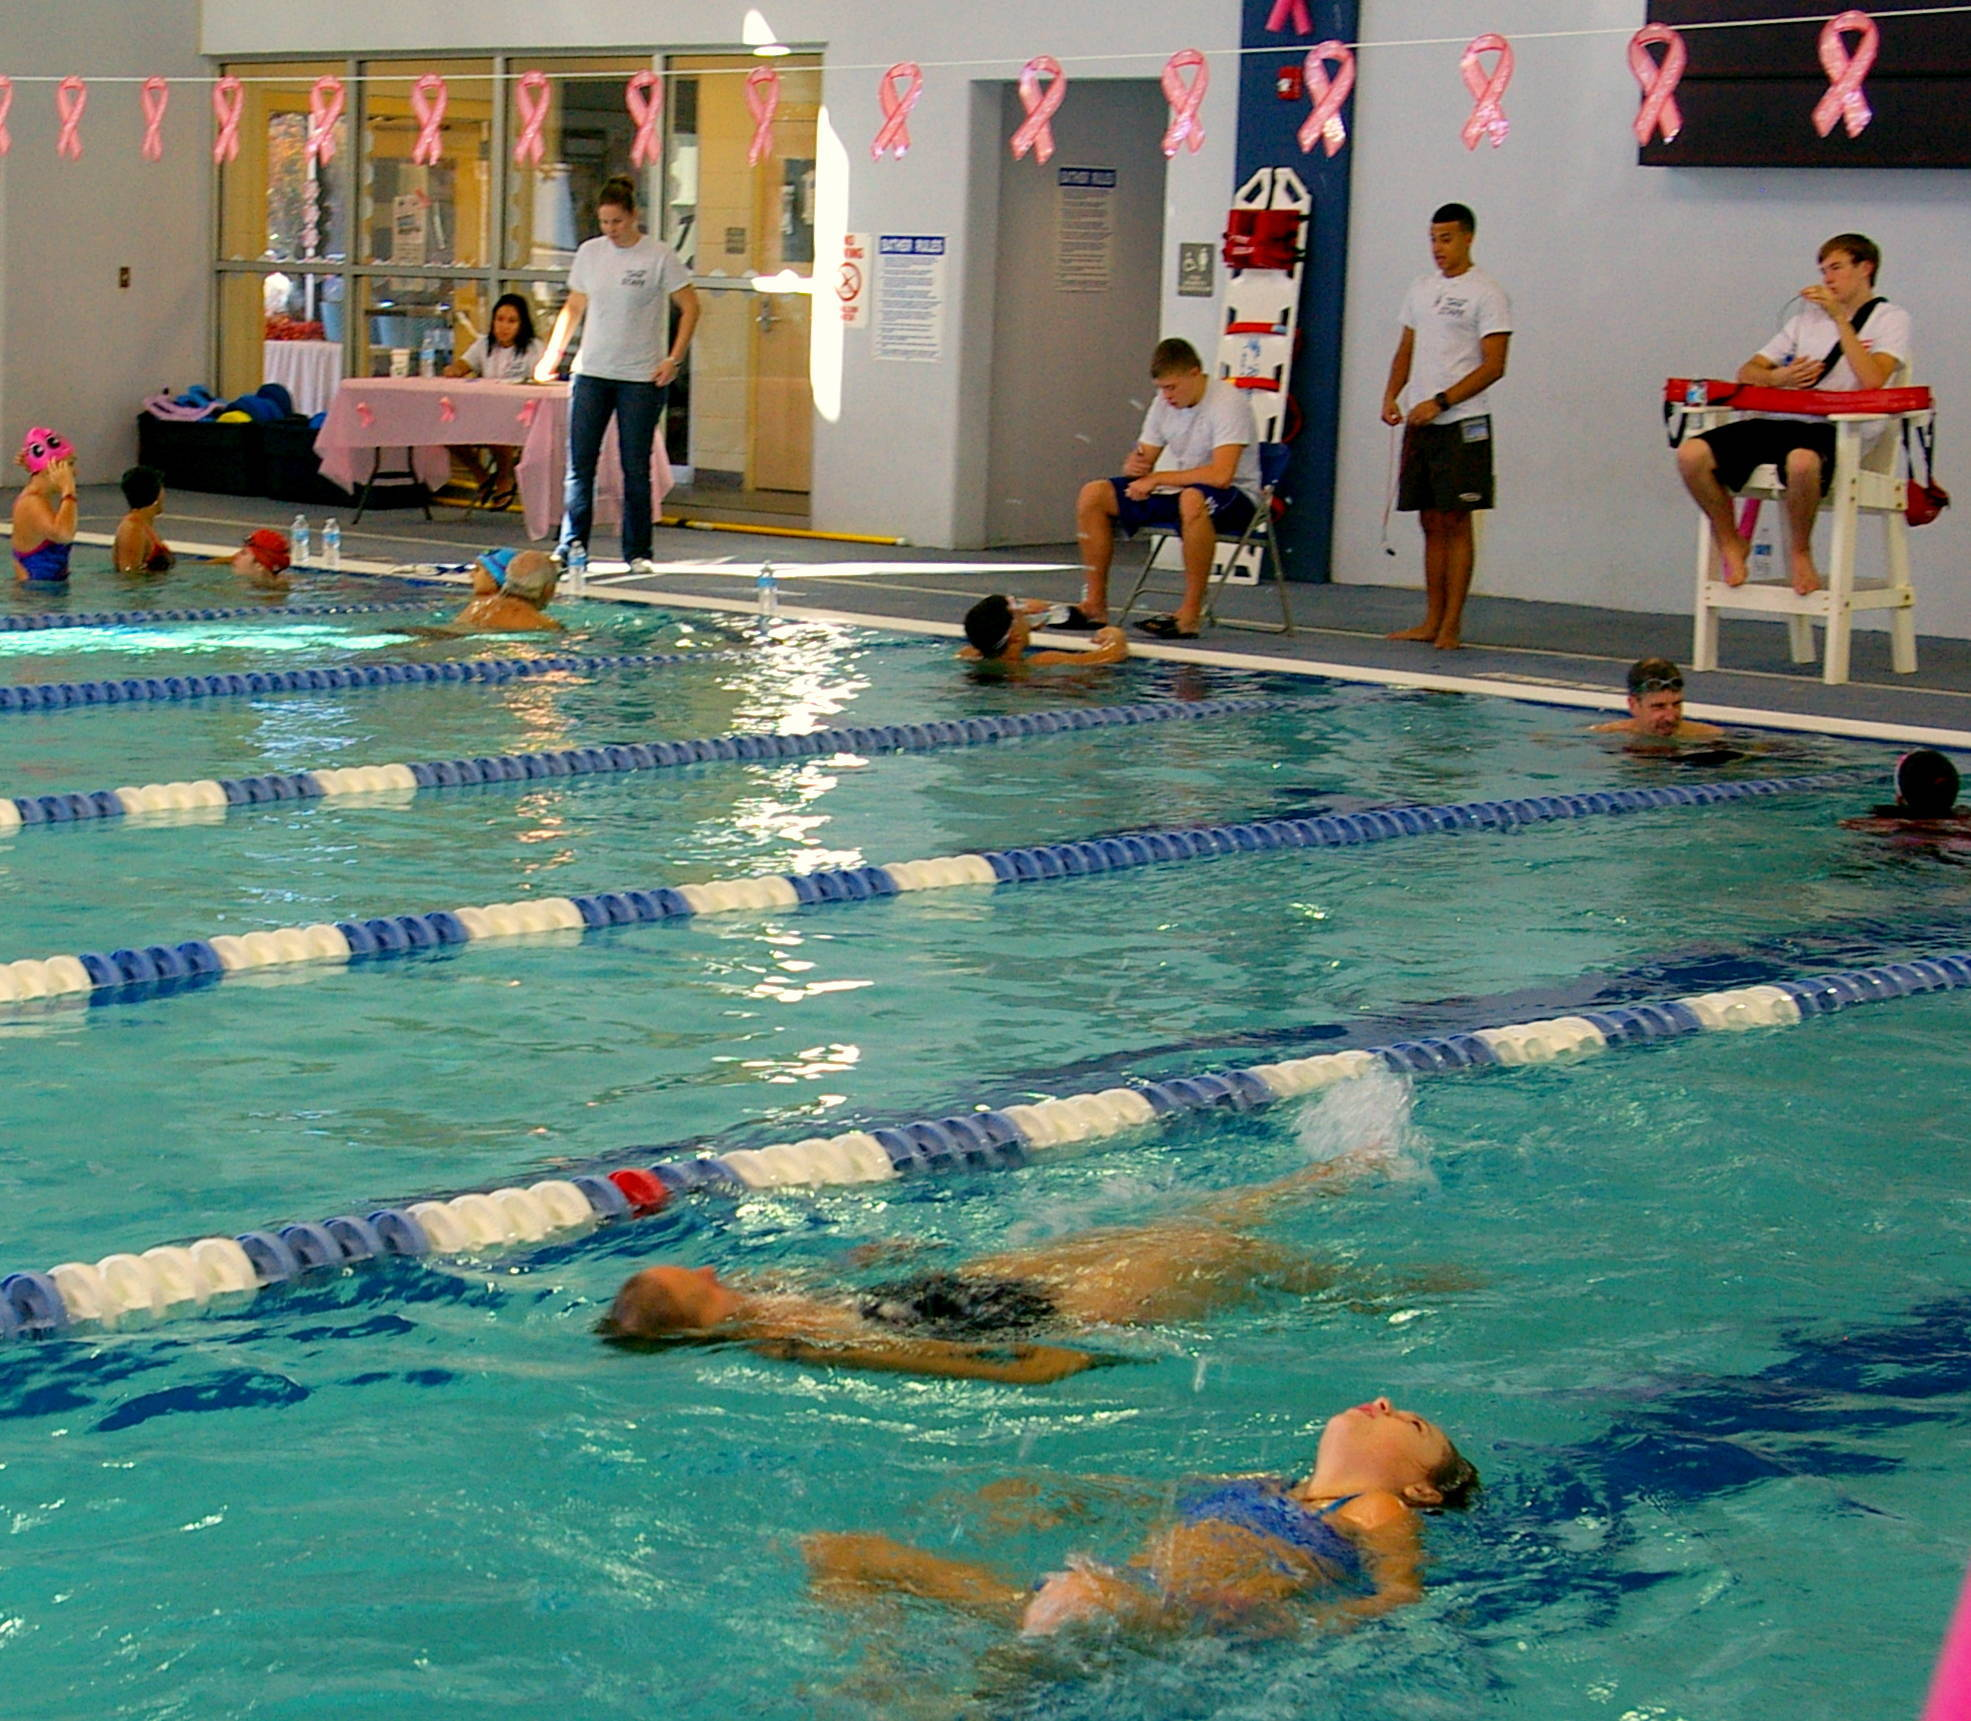 9089522dd09a6321cd4c_5th_Annual_Autism_Awareness_Swim___Play.jpg